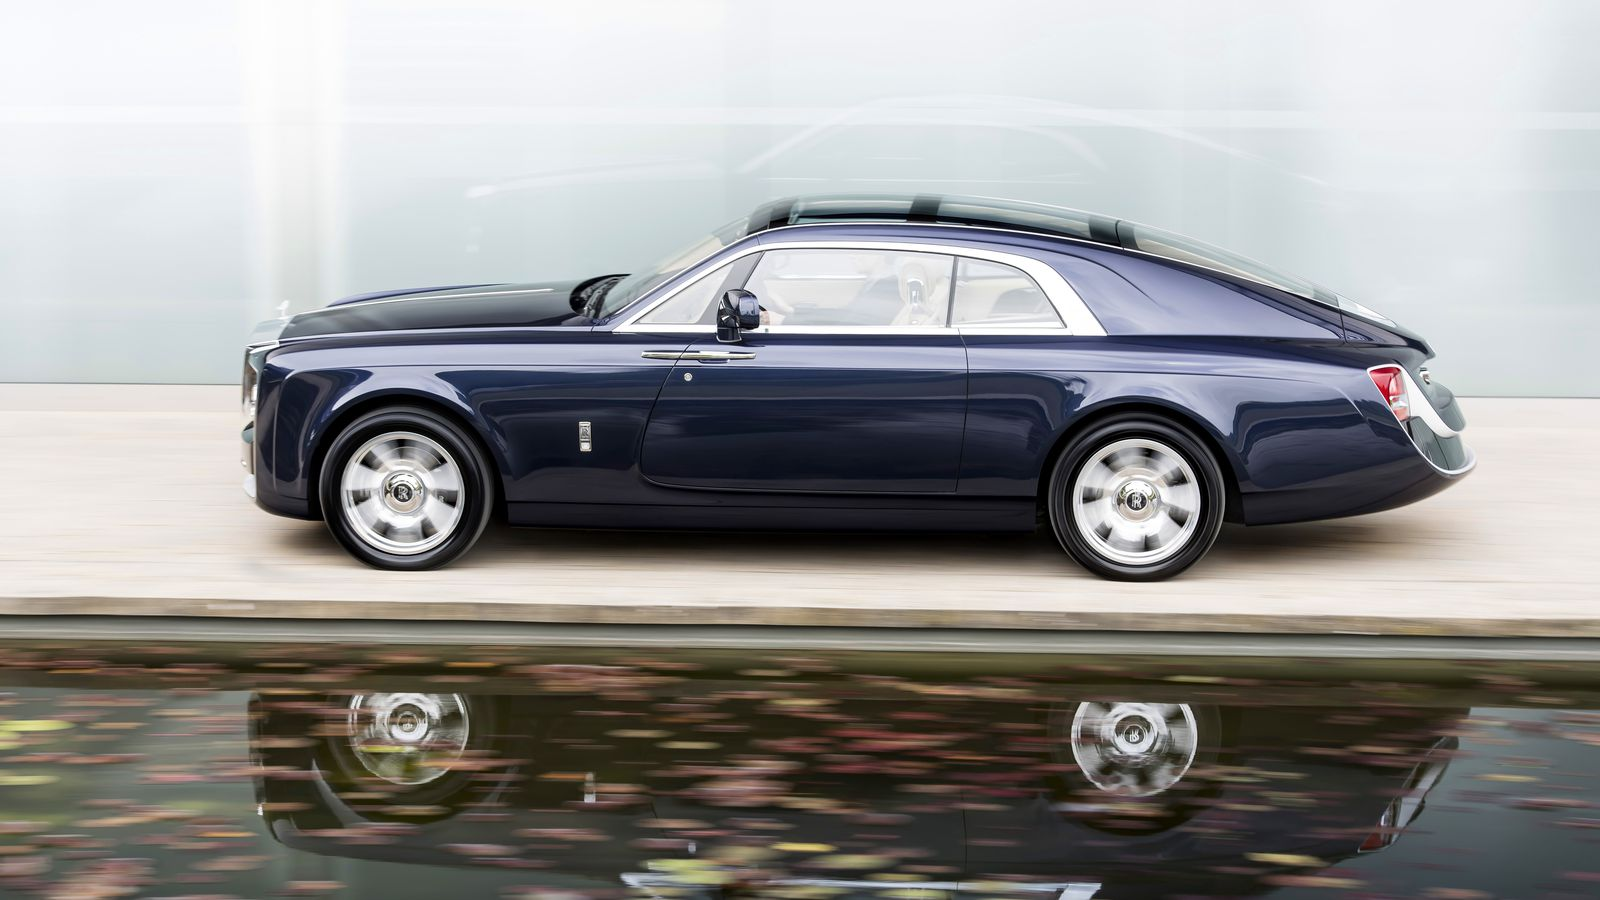 Rolls Royce Custom Built This Gorgeous Coupe For A Mystery Millionaire The Verge